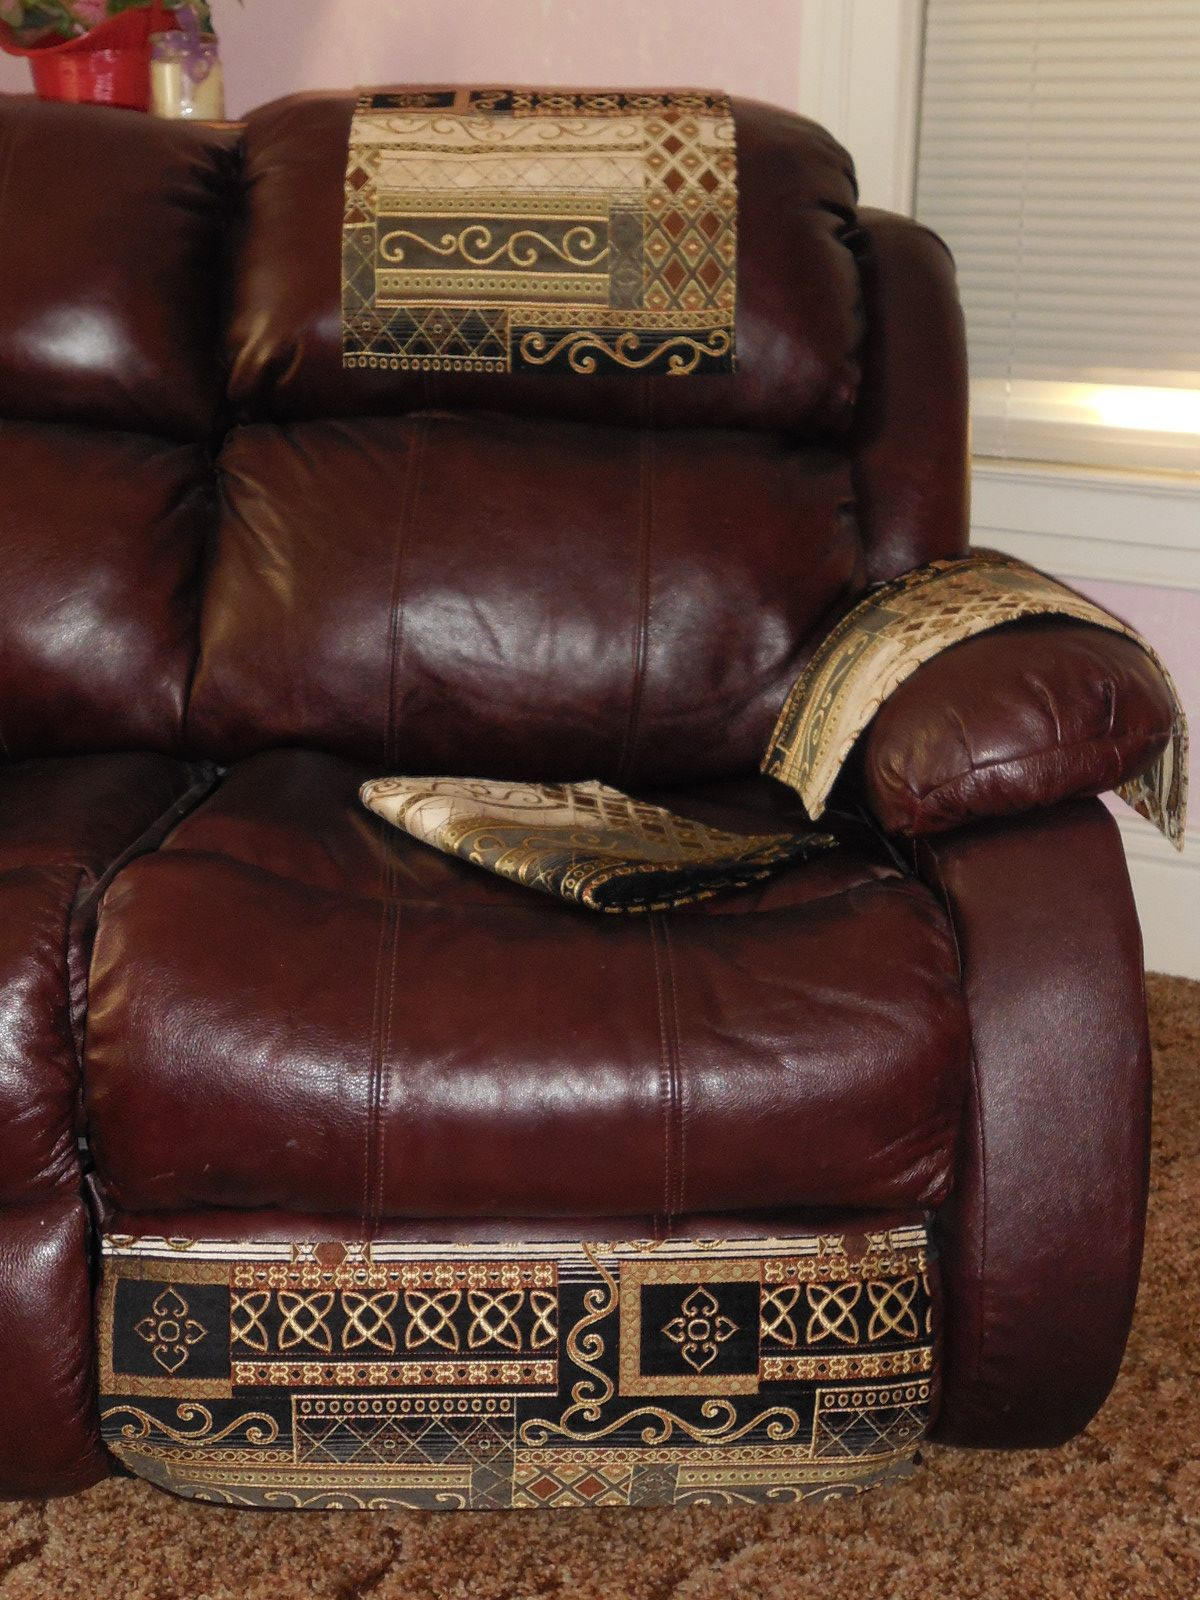 4pc Set to help protect your furniture. More pictures at